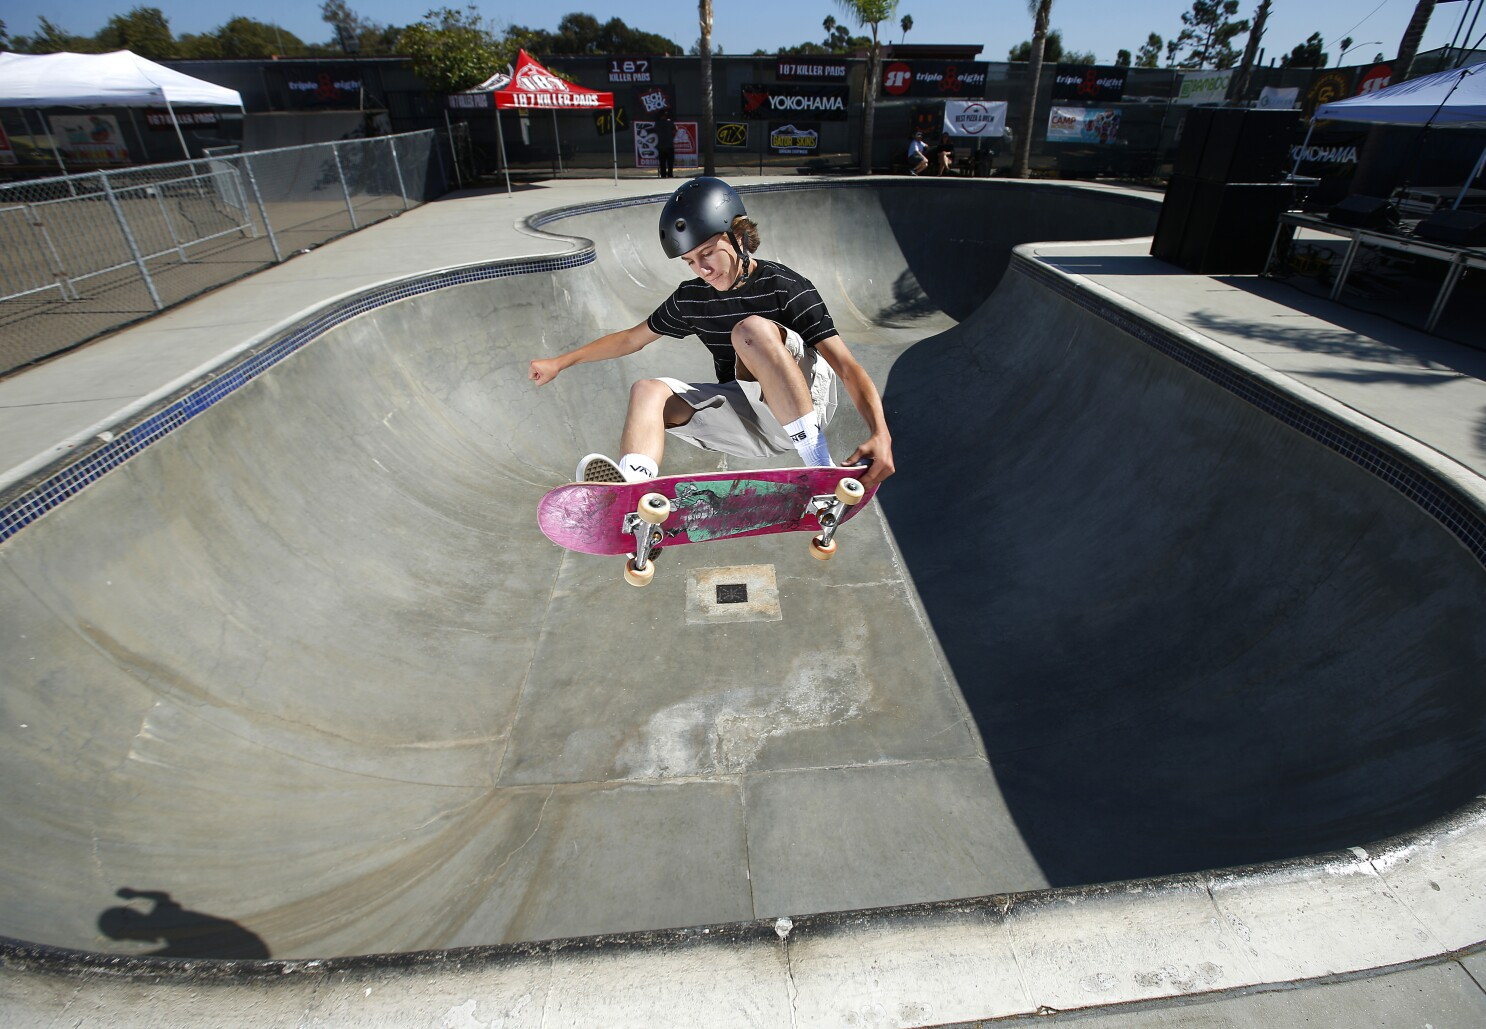 Homegrown skater returns to roots in Clash at Clairemont